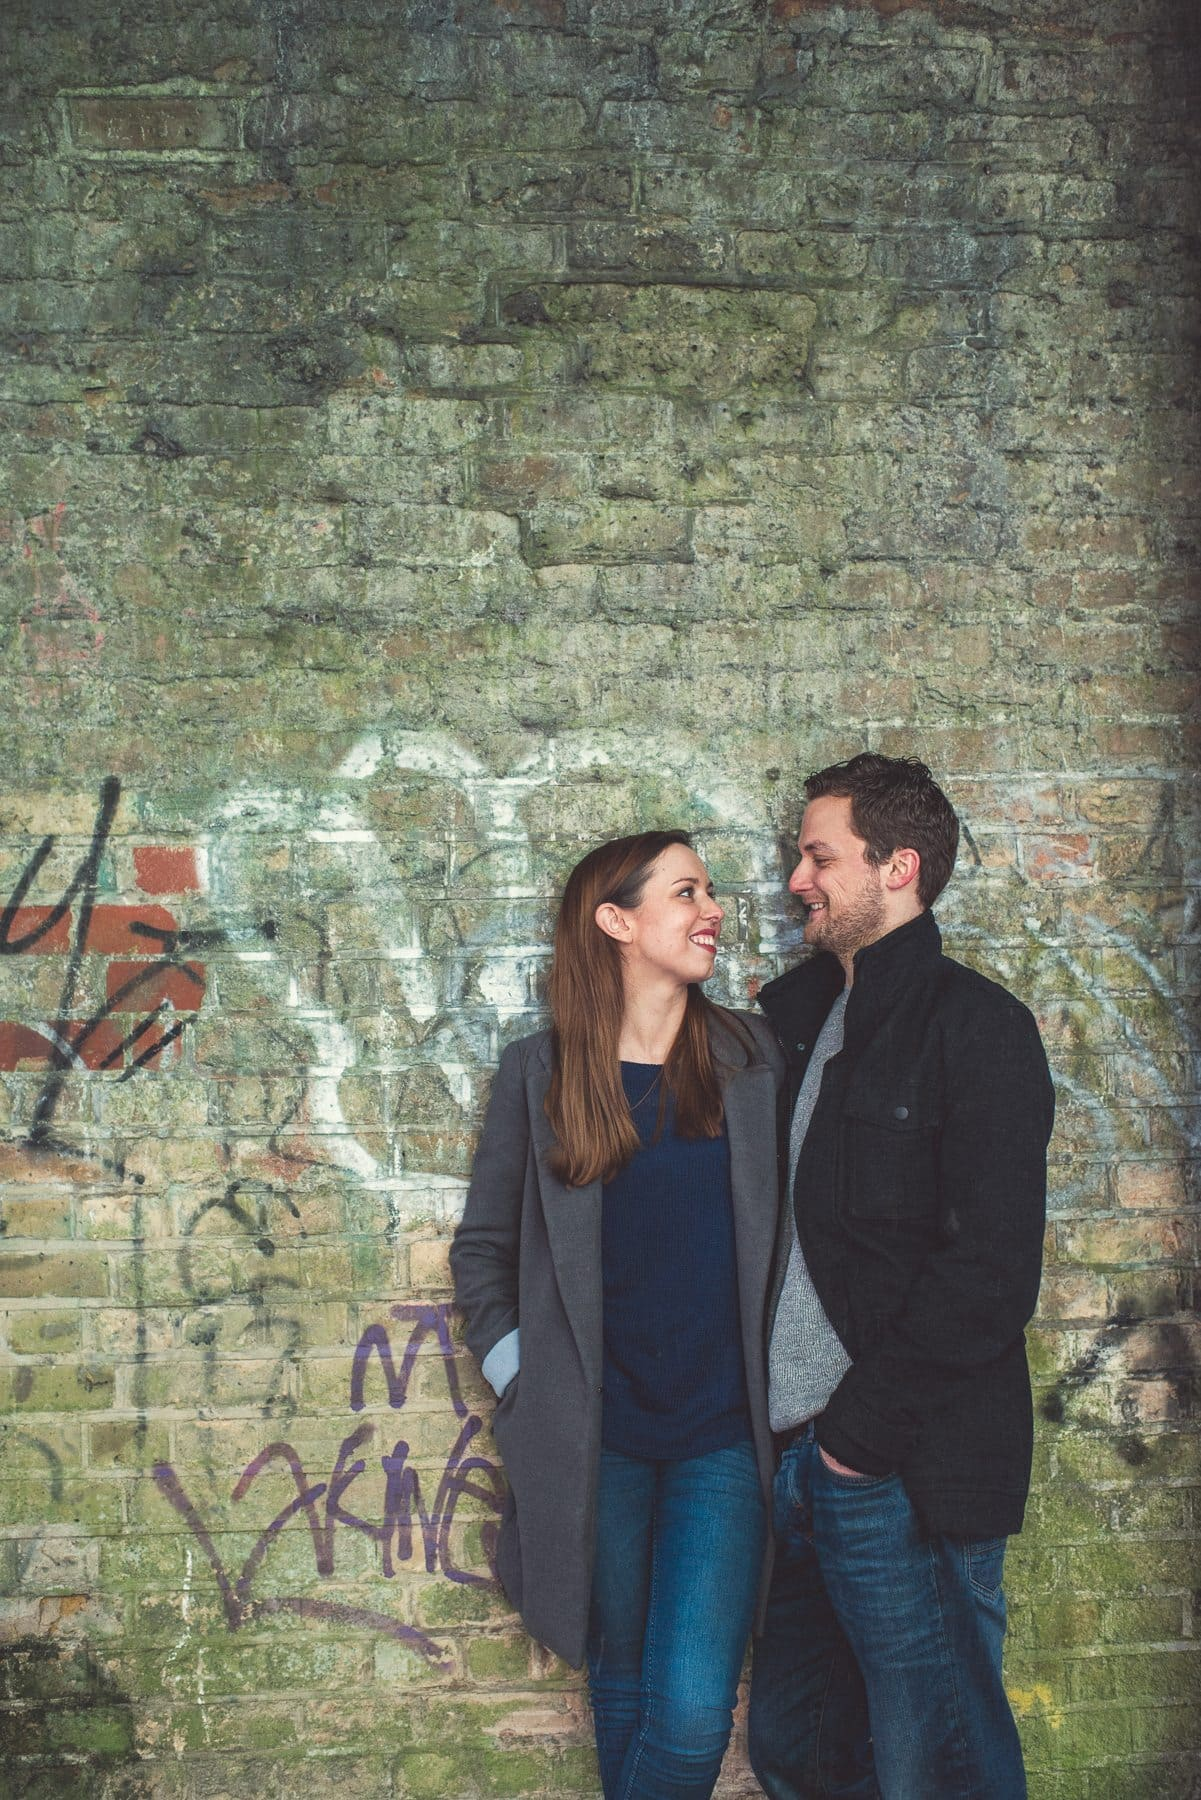 Kent Downs romantic relaxed engagement shoot couple standing in a tunnel with graffitti